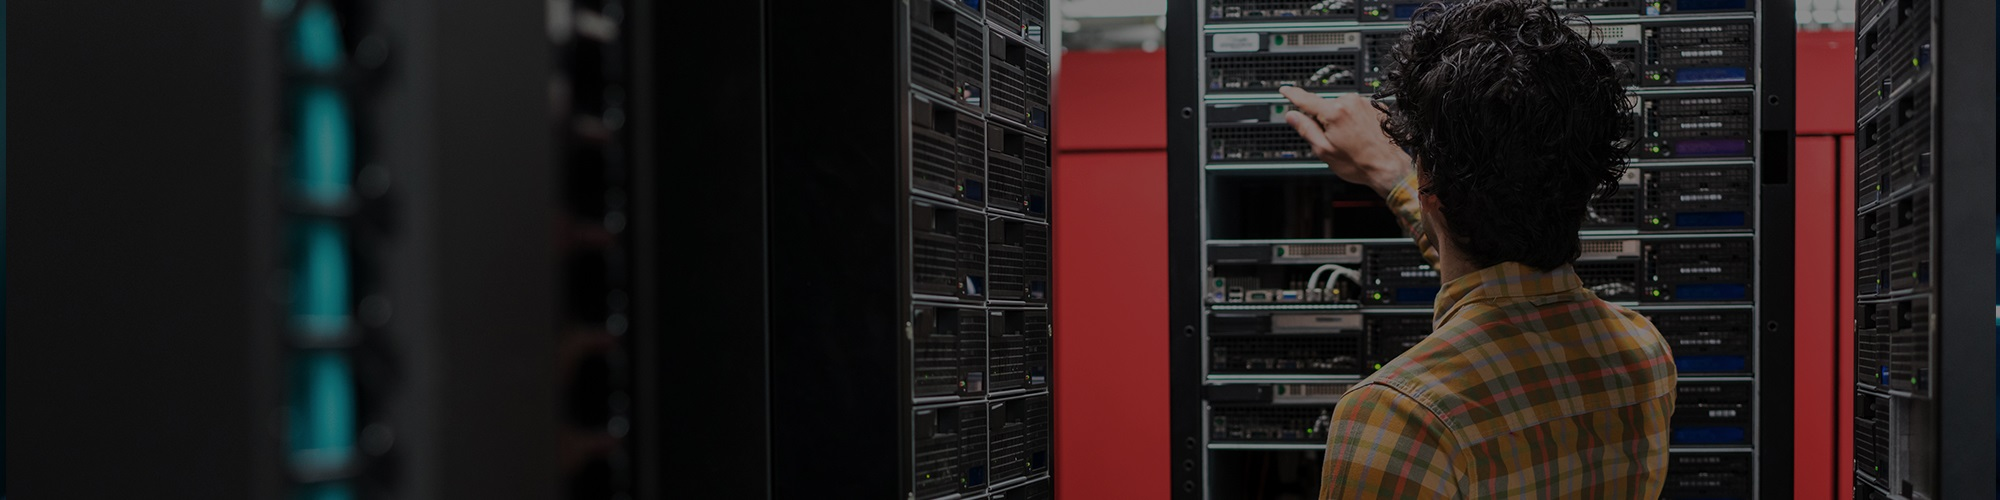 Man pointing at one server among tall stacks of servers.